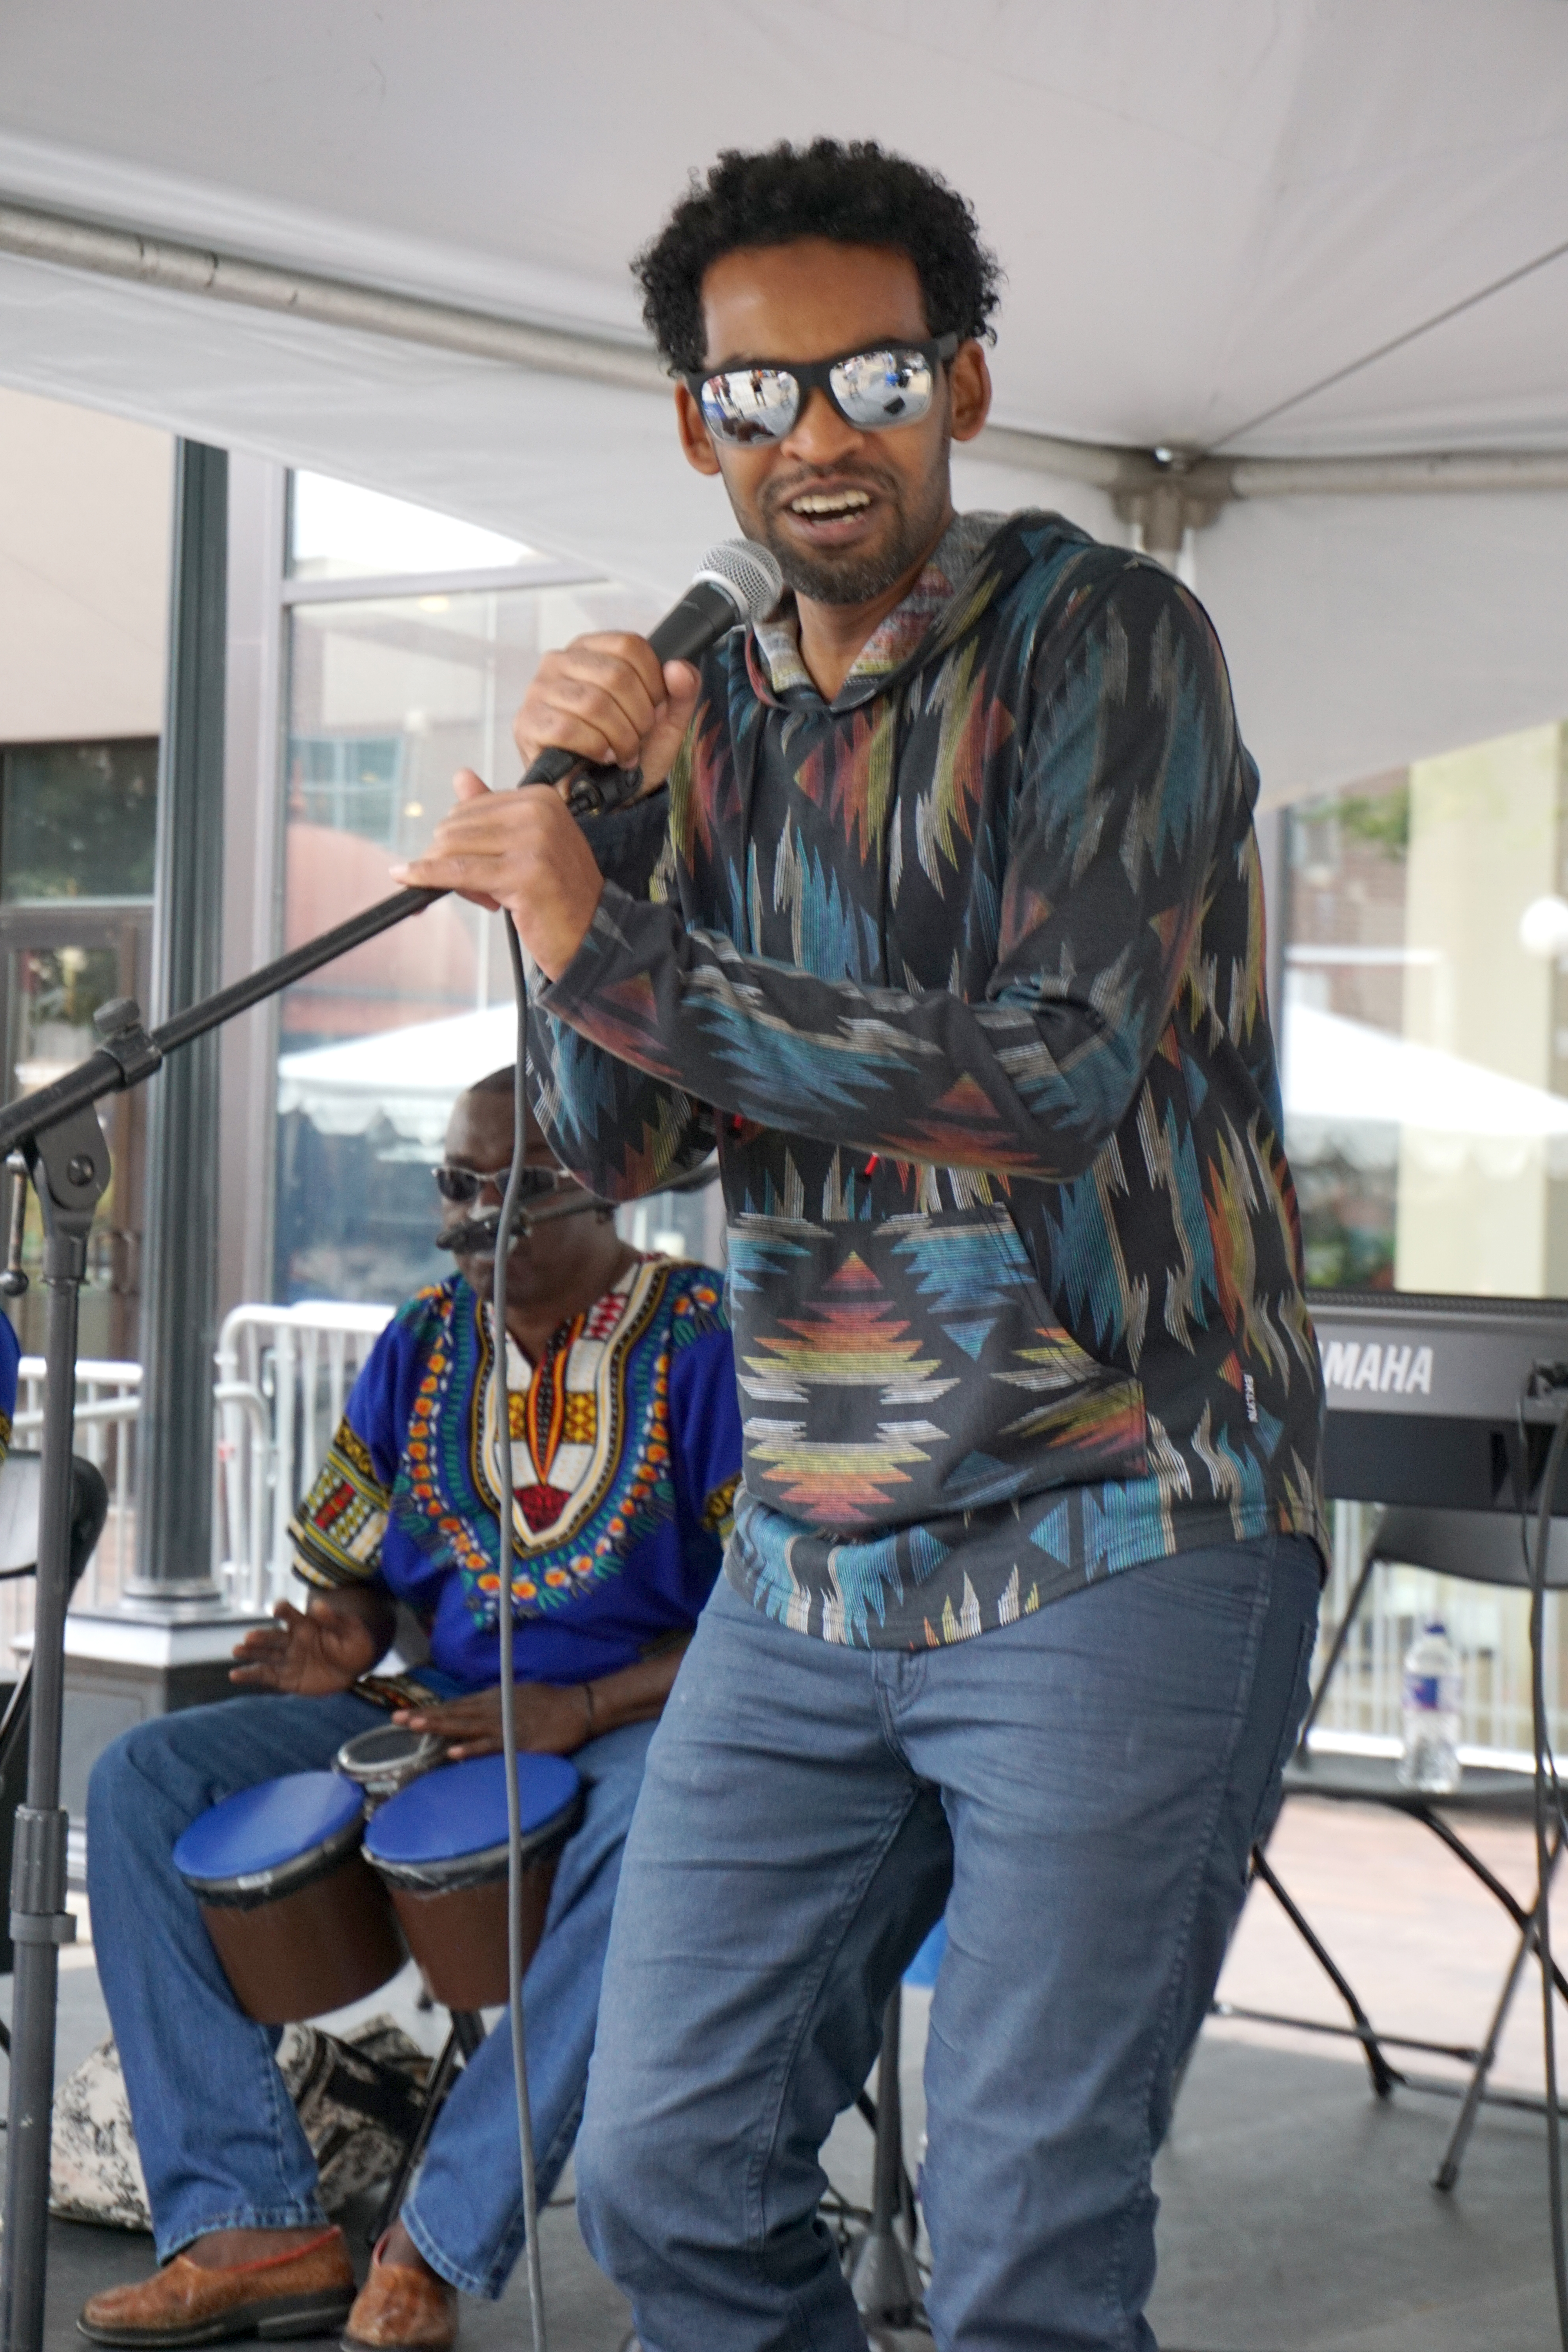 Singer of the SD Band at the 2017 Iowa Soul Festival in Iowa City. IA (Summer of the Arts)